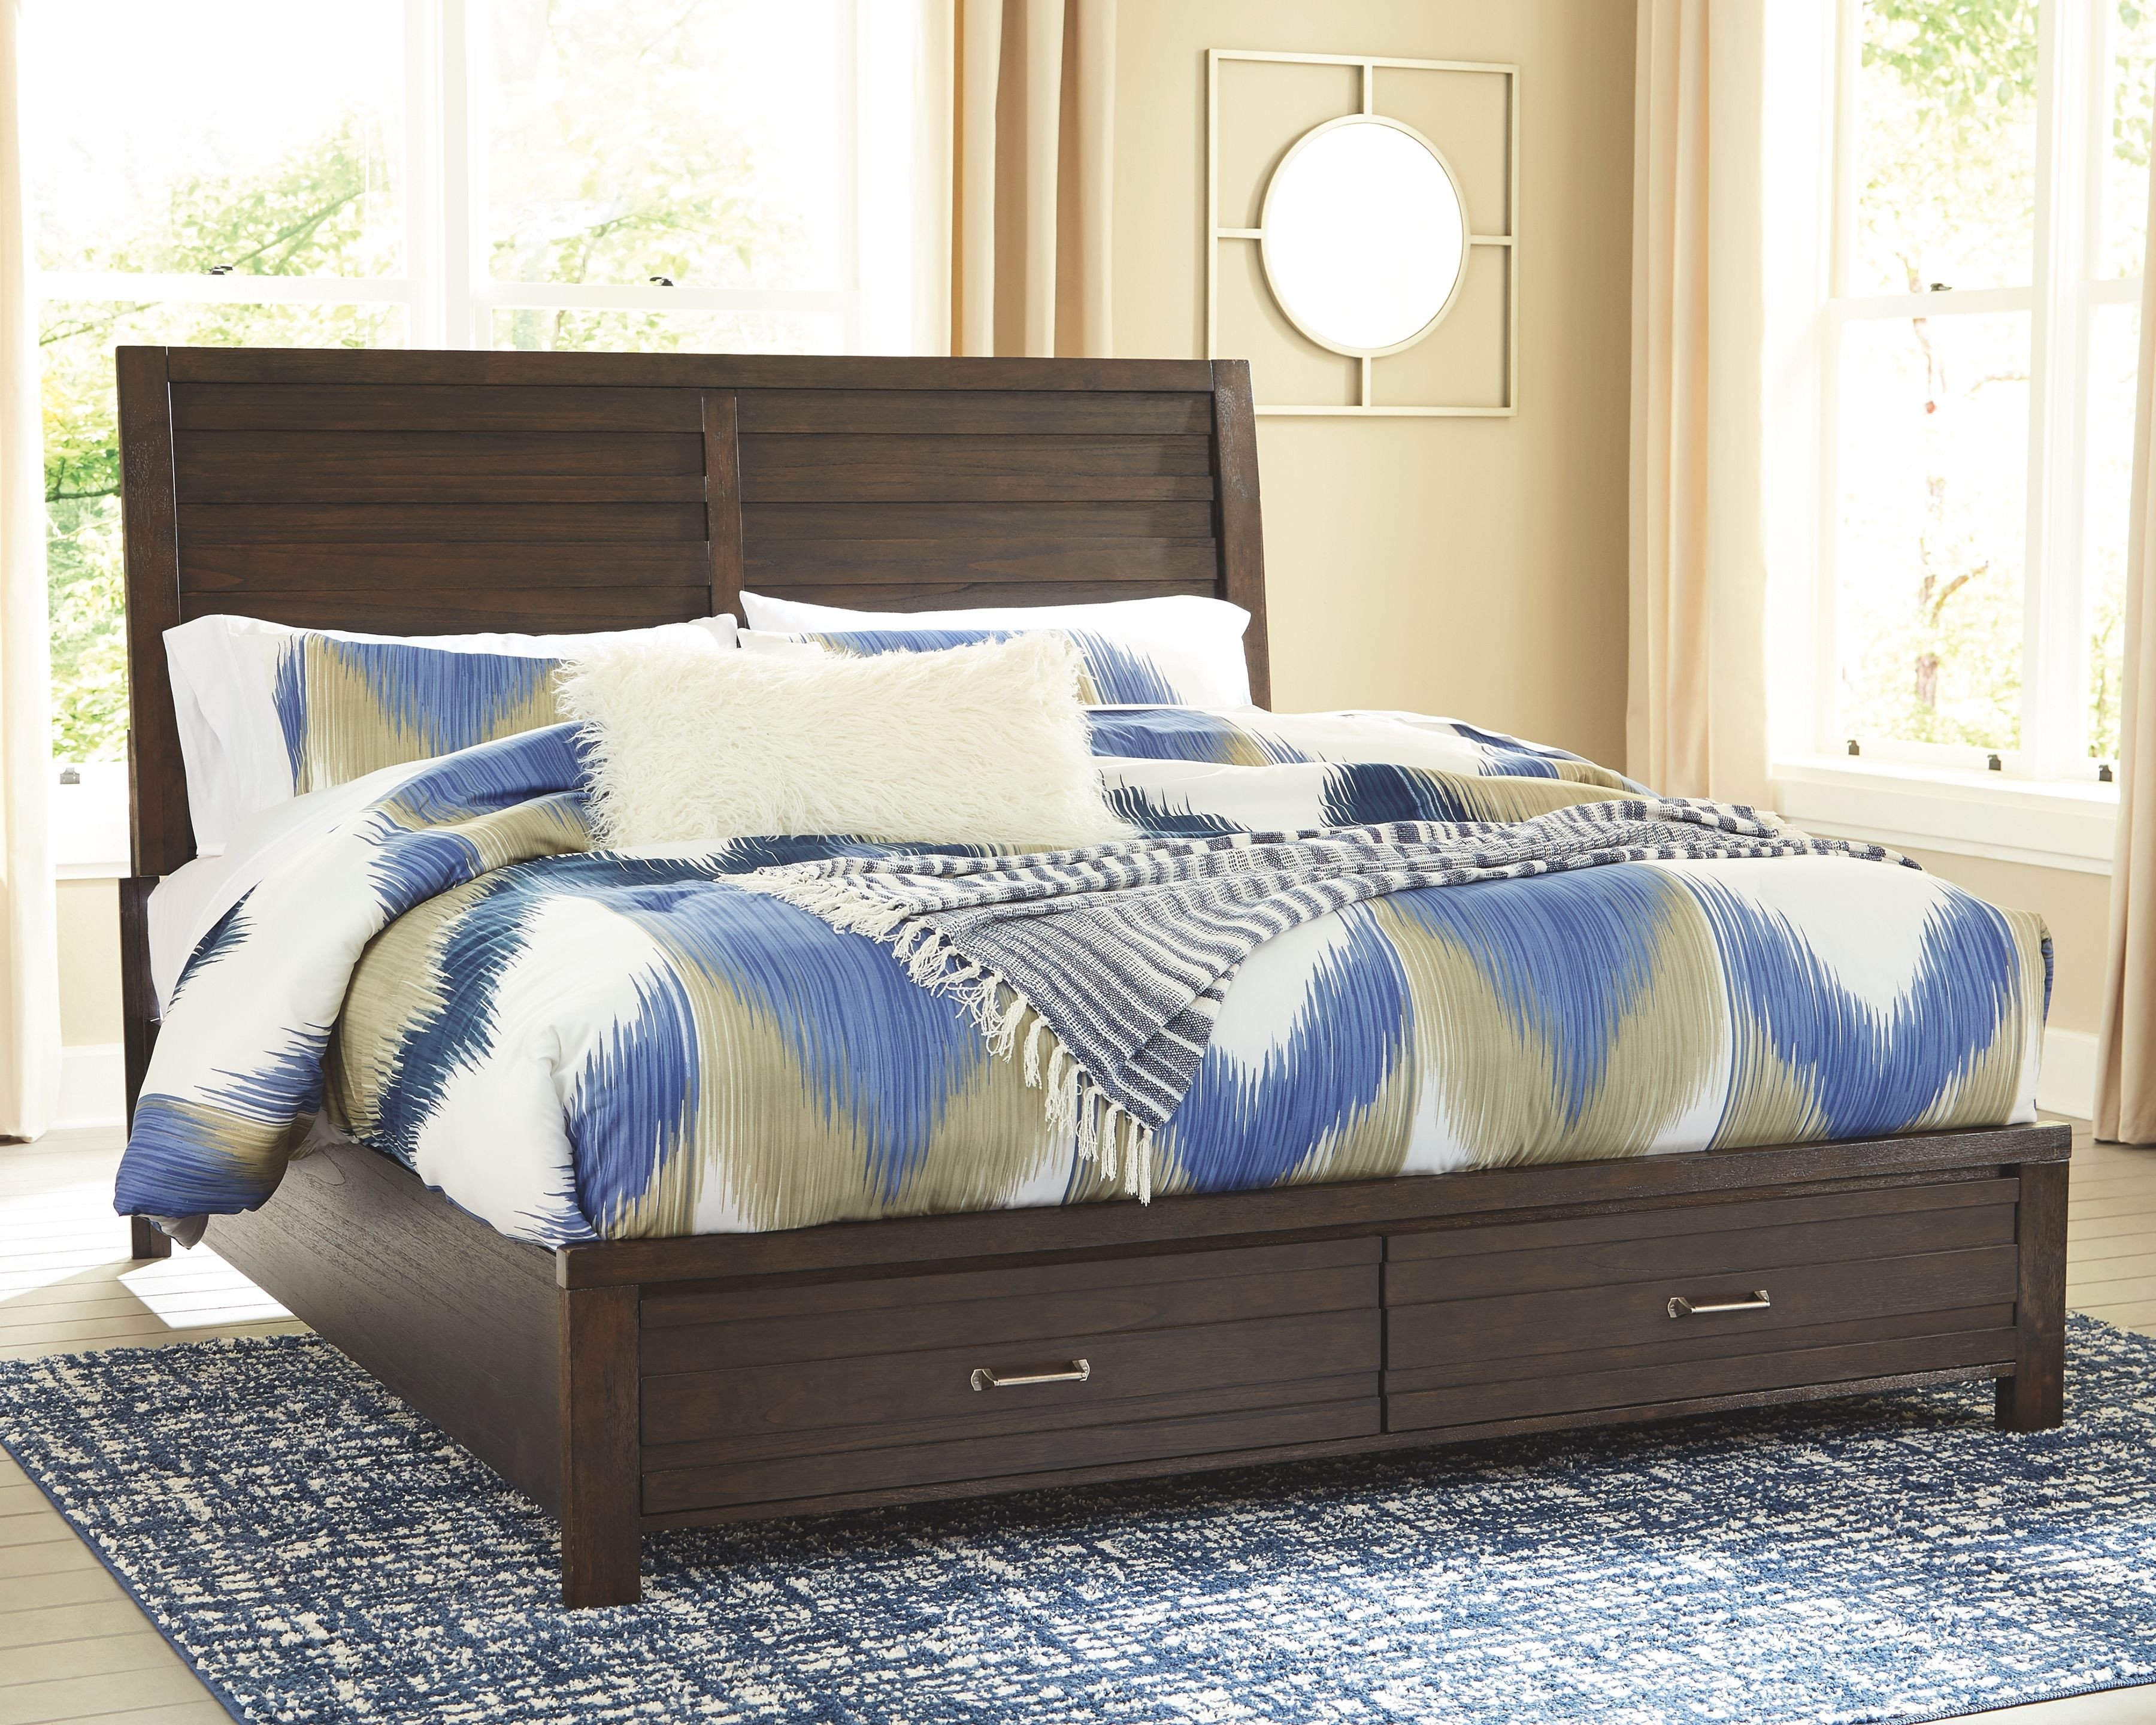 California King Bedroom Set Inspirational Darbry California King Panel Bed with Storage Brown